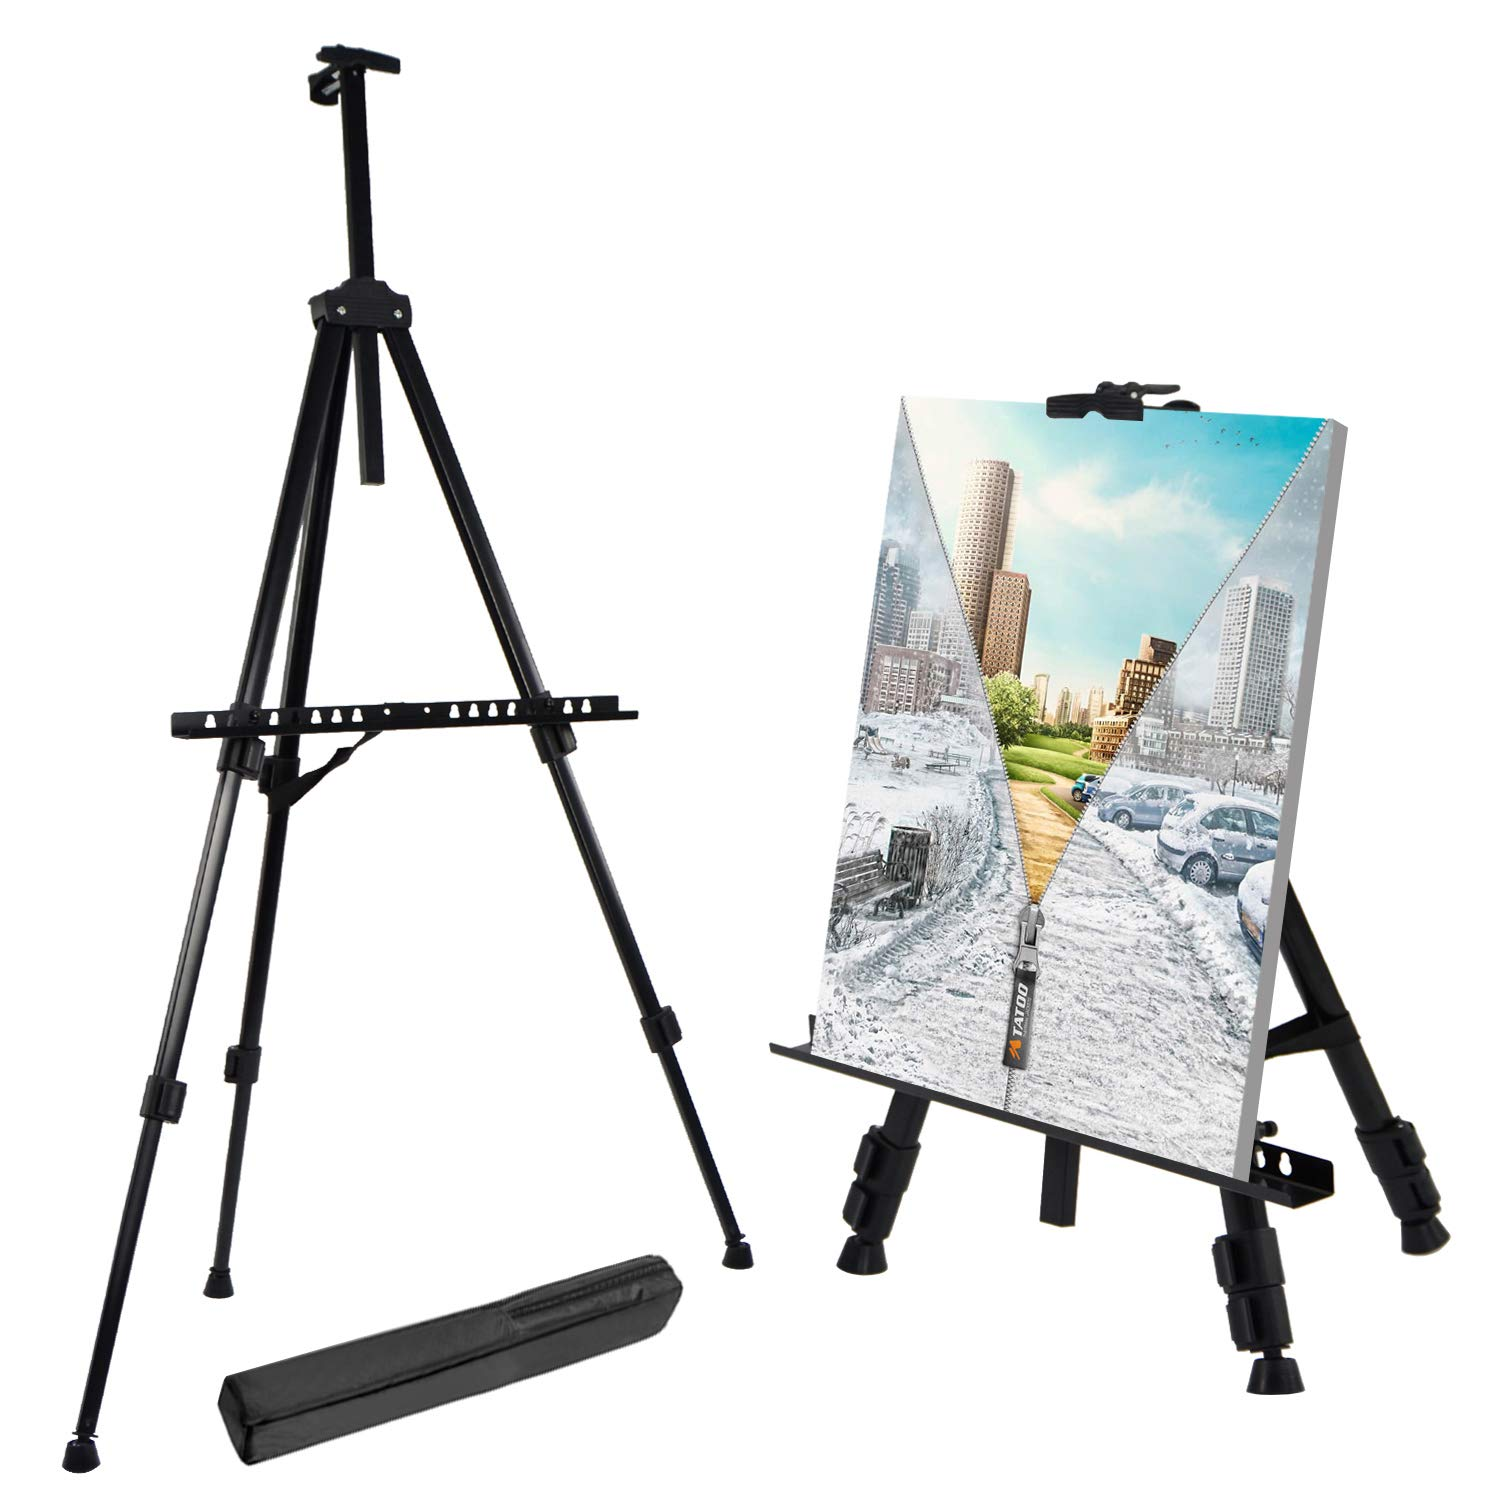 T-SIGN 66 Inches Reinforced Artist Easel Stand, Extra Thick Aluminum Metal Tripod Display Easel 21 to 66 Inches Adjustable Height with Portable Bag for Floor/Table-Top Drawing and Displaying by T-SIGN